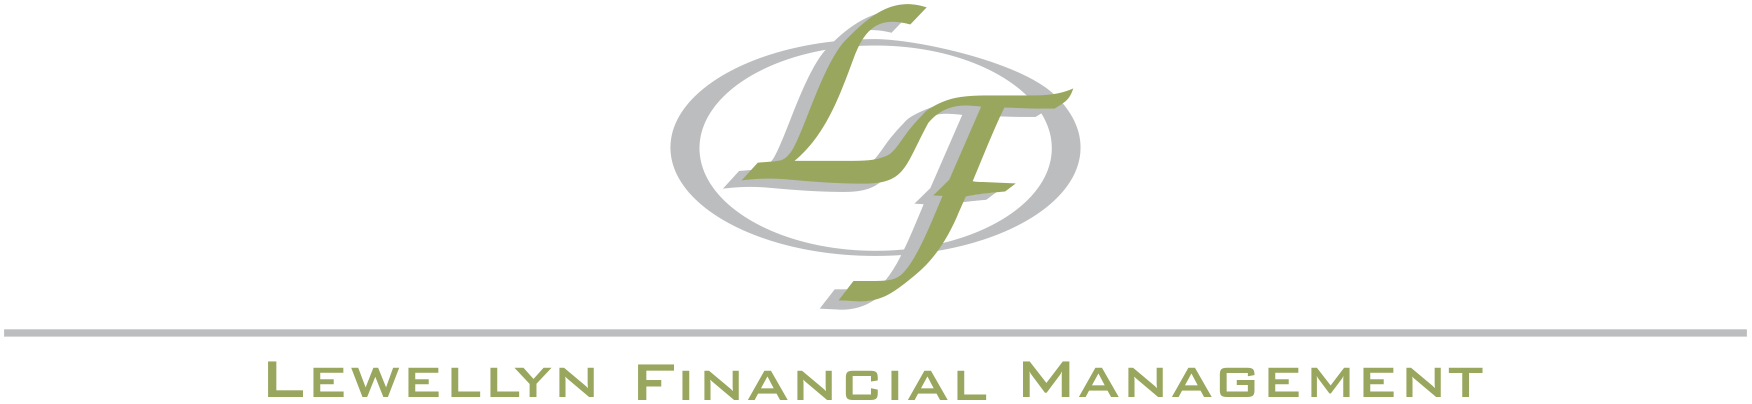 Logo for Lewellyn Financial Management